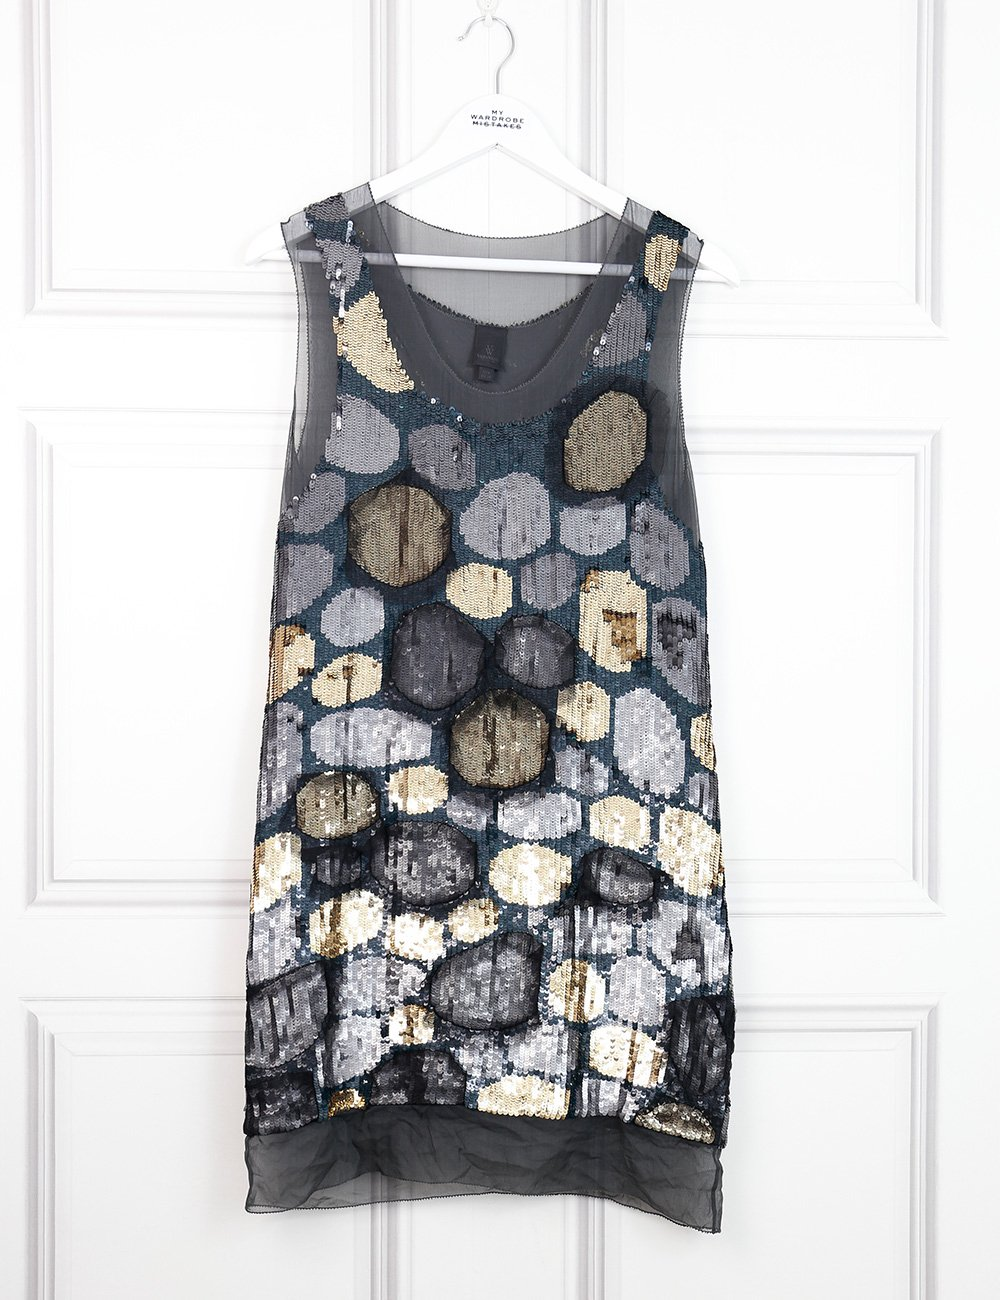 Vera Wang multicolour sleeveless sequinned dress 8UK- My Wardrobe Mistakes